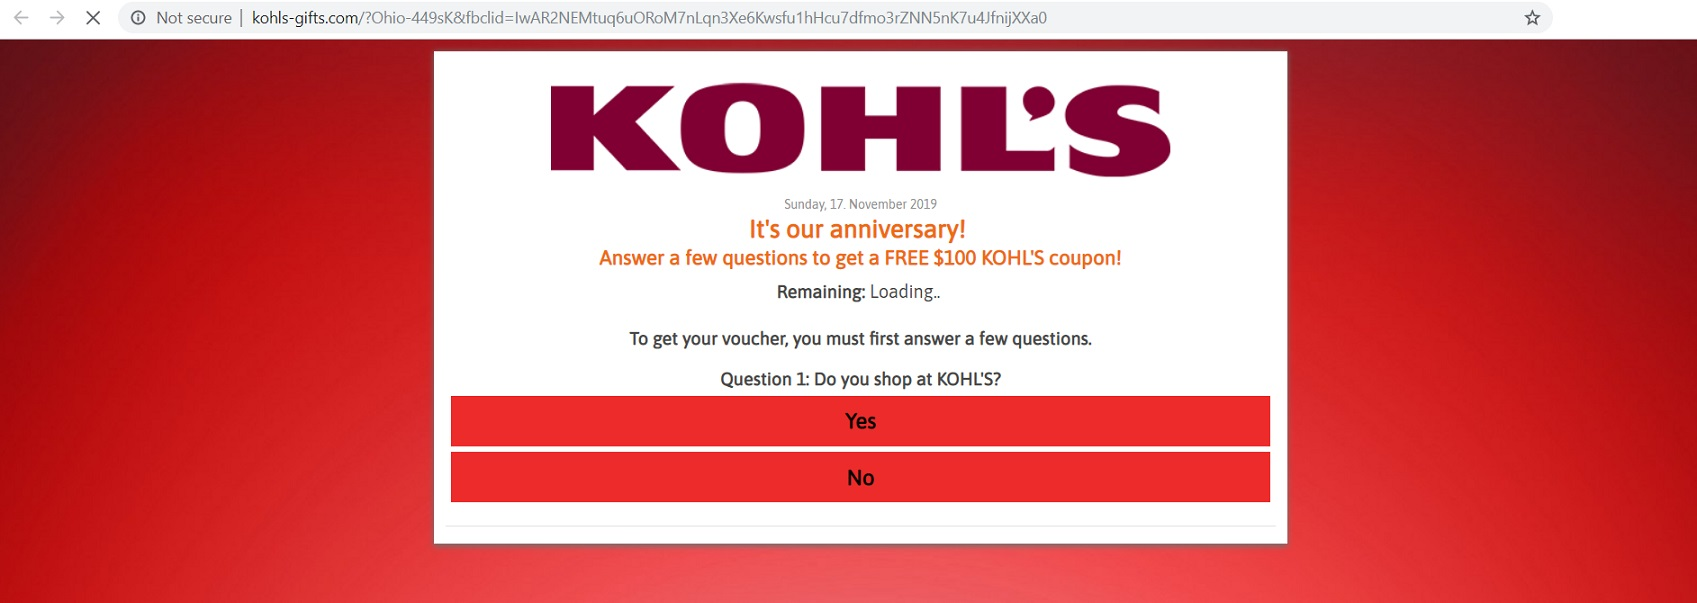 The Kohls Anniversay Free Coupon Scam at kohls-gifts.com